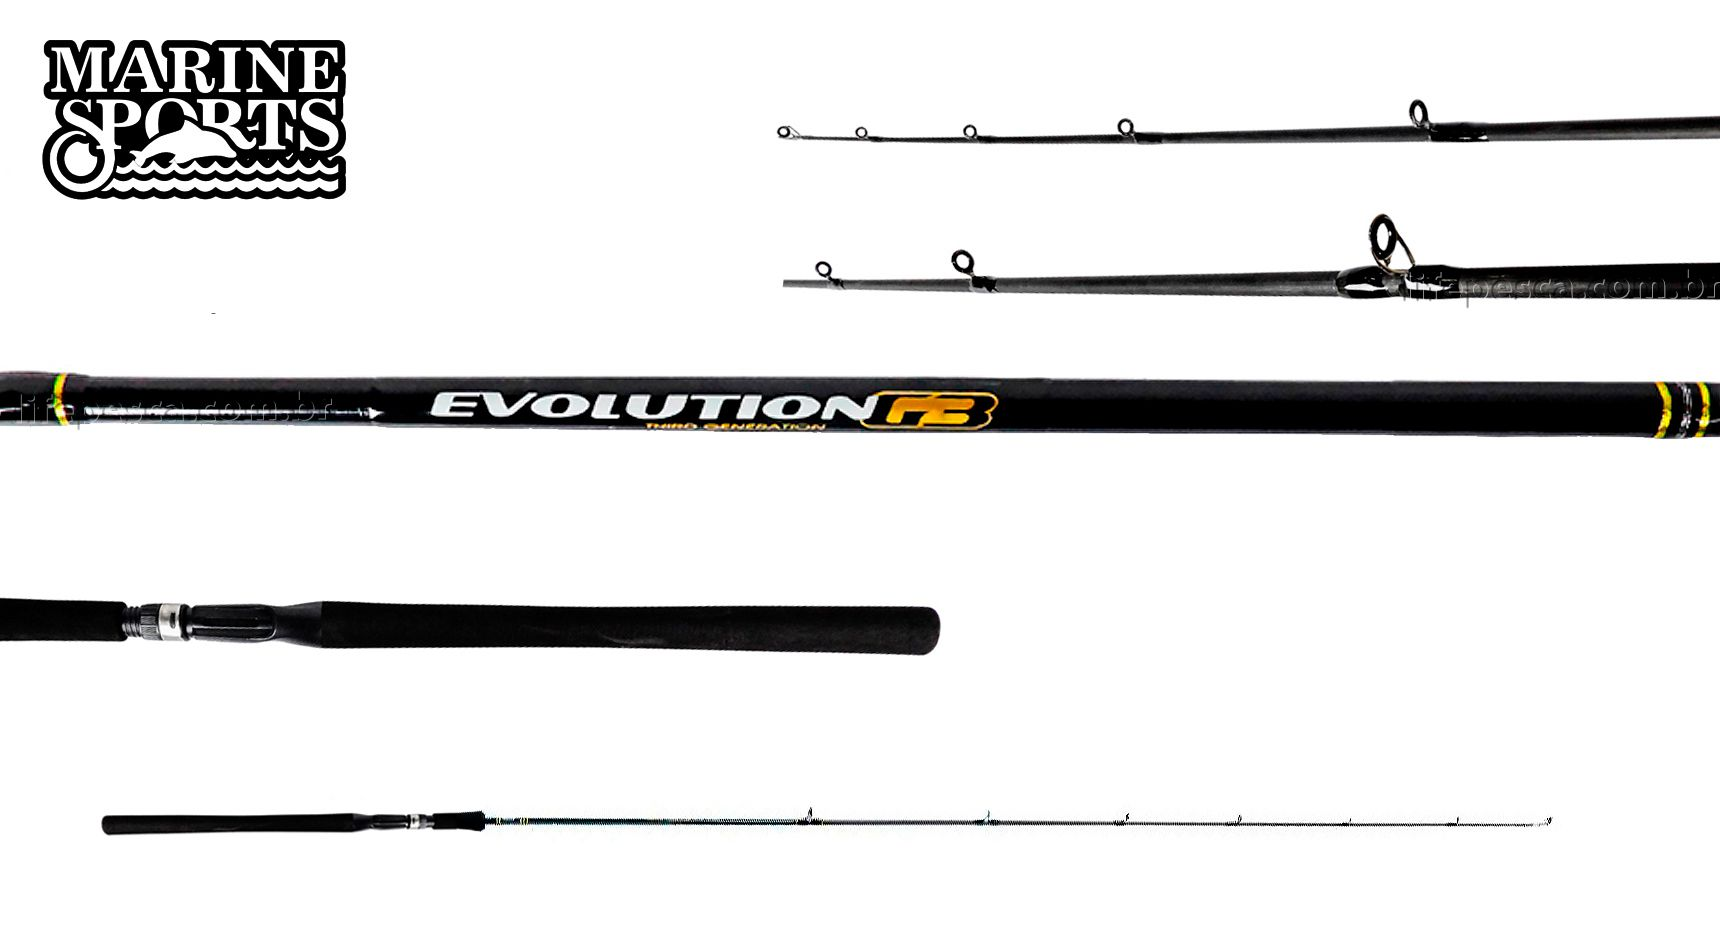 Vara para Molinete Marine sports Evolution G3 6